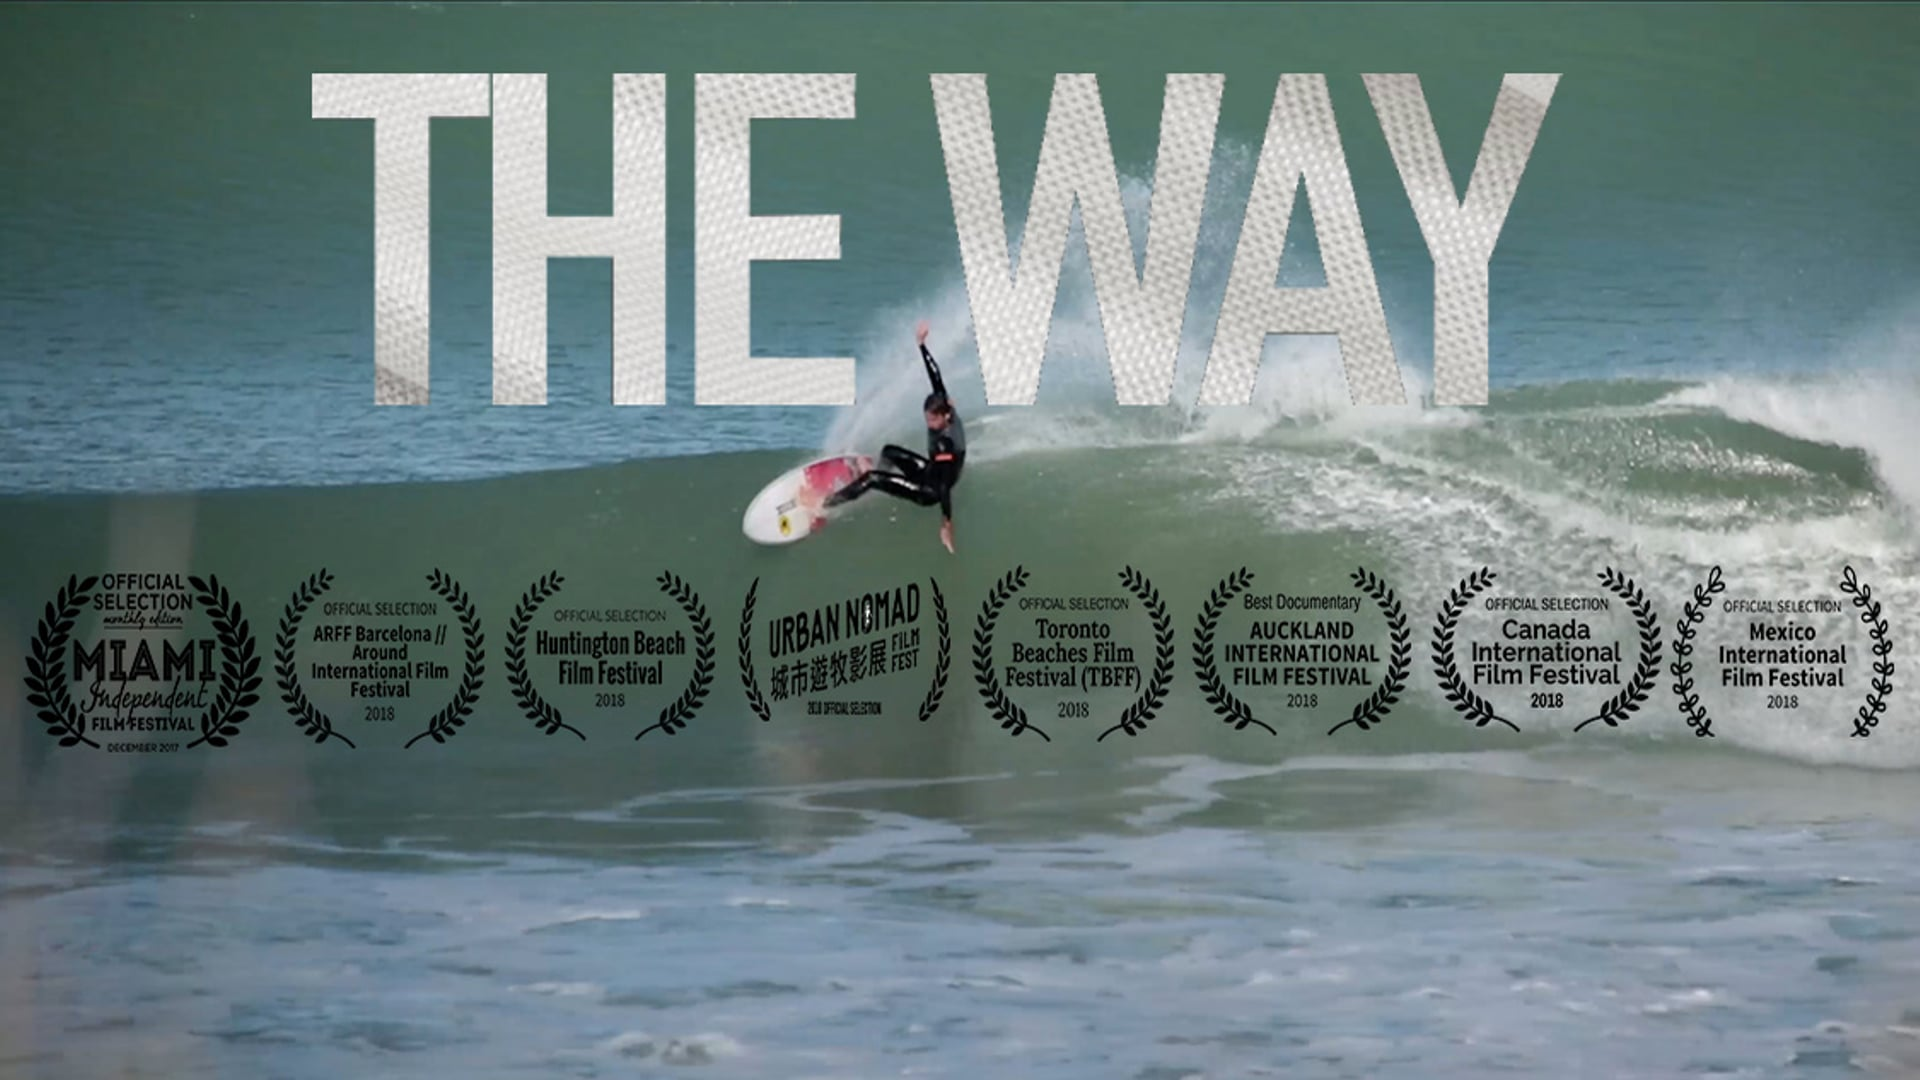 'The Way' Surfing Documentary Official Trailer